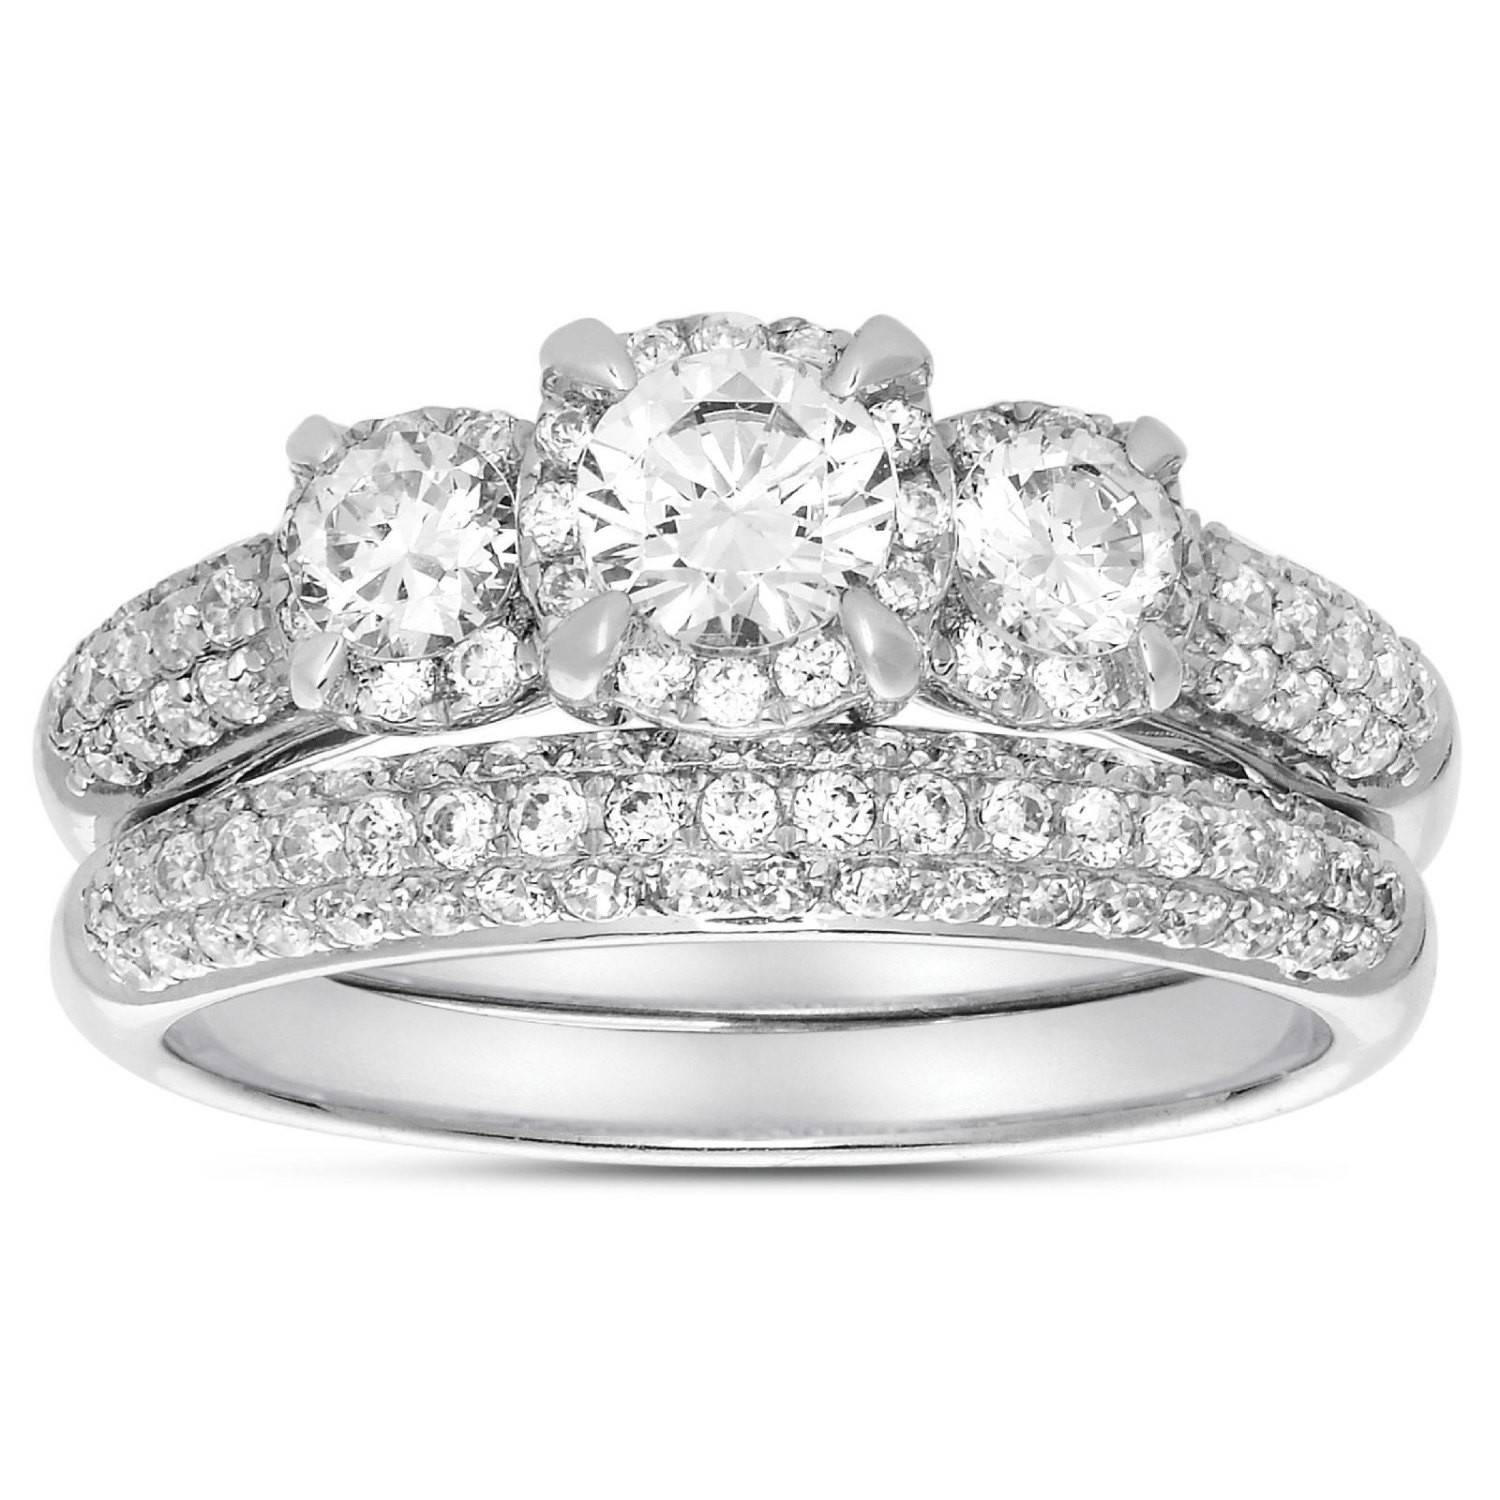 2 Carat Three Stone Trilogy Round Diamond Wedding Ring Set In Throughout Cheap White Gold Wedding Rings (View 3 of 15)